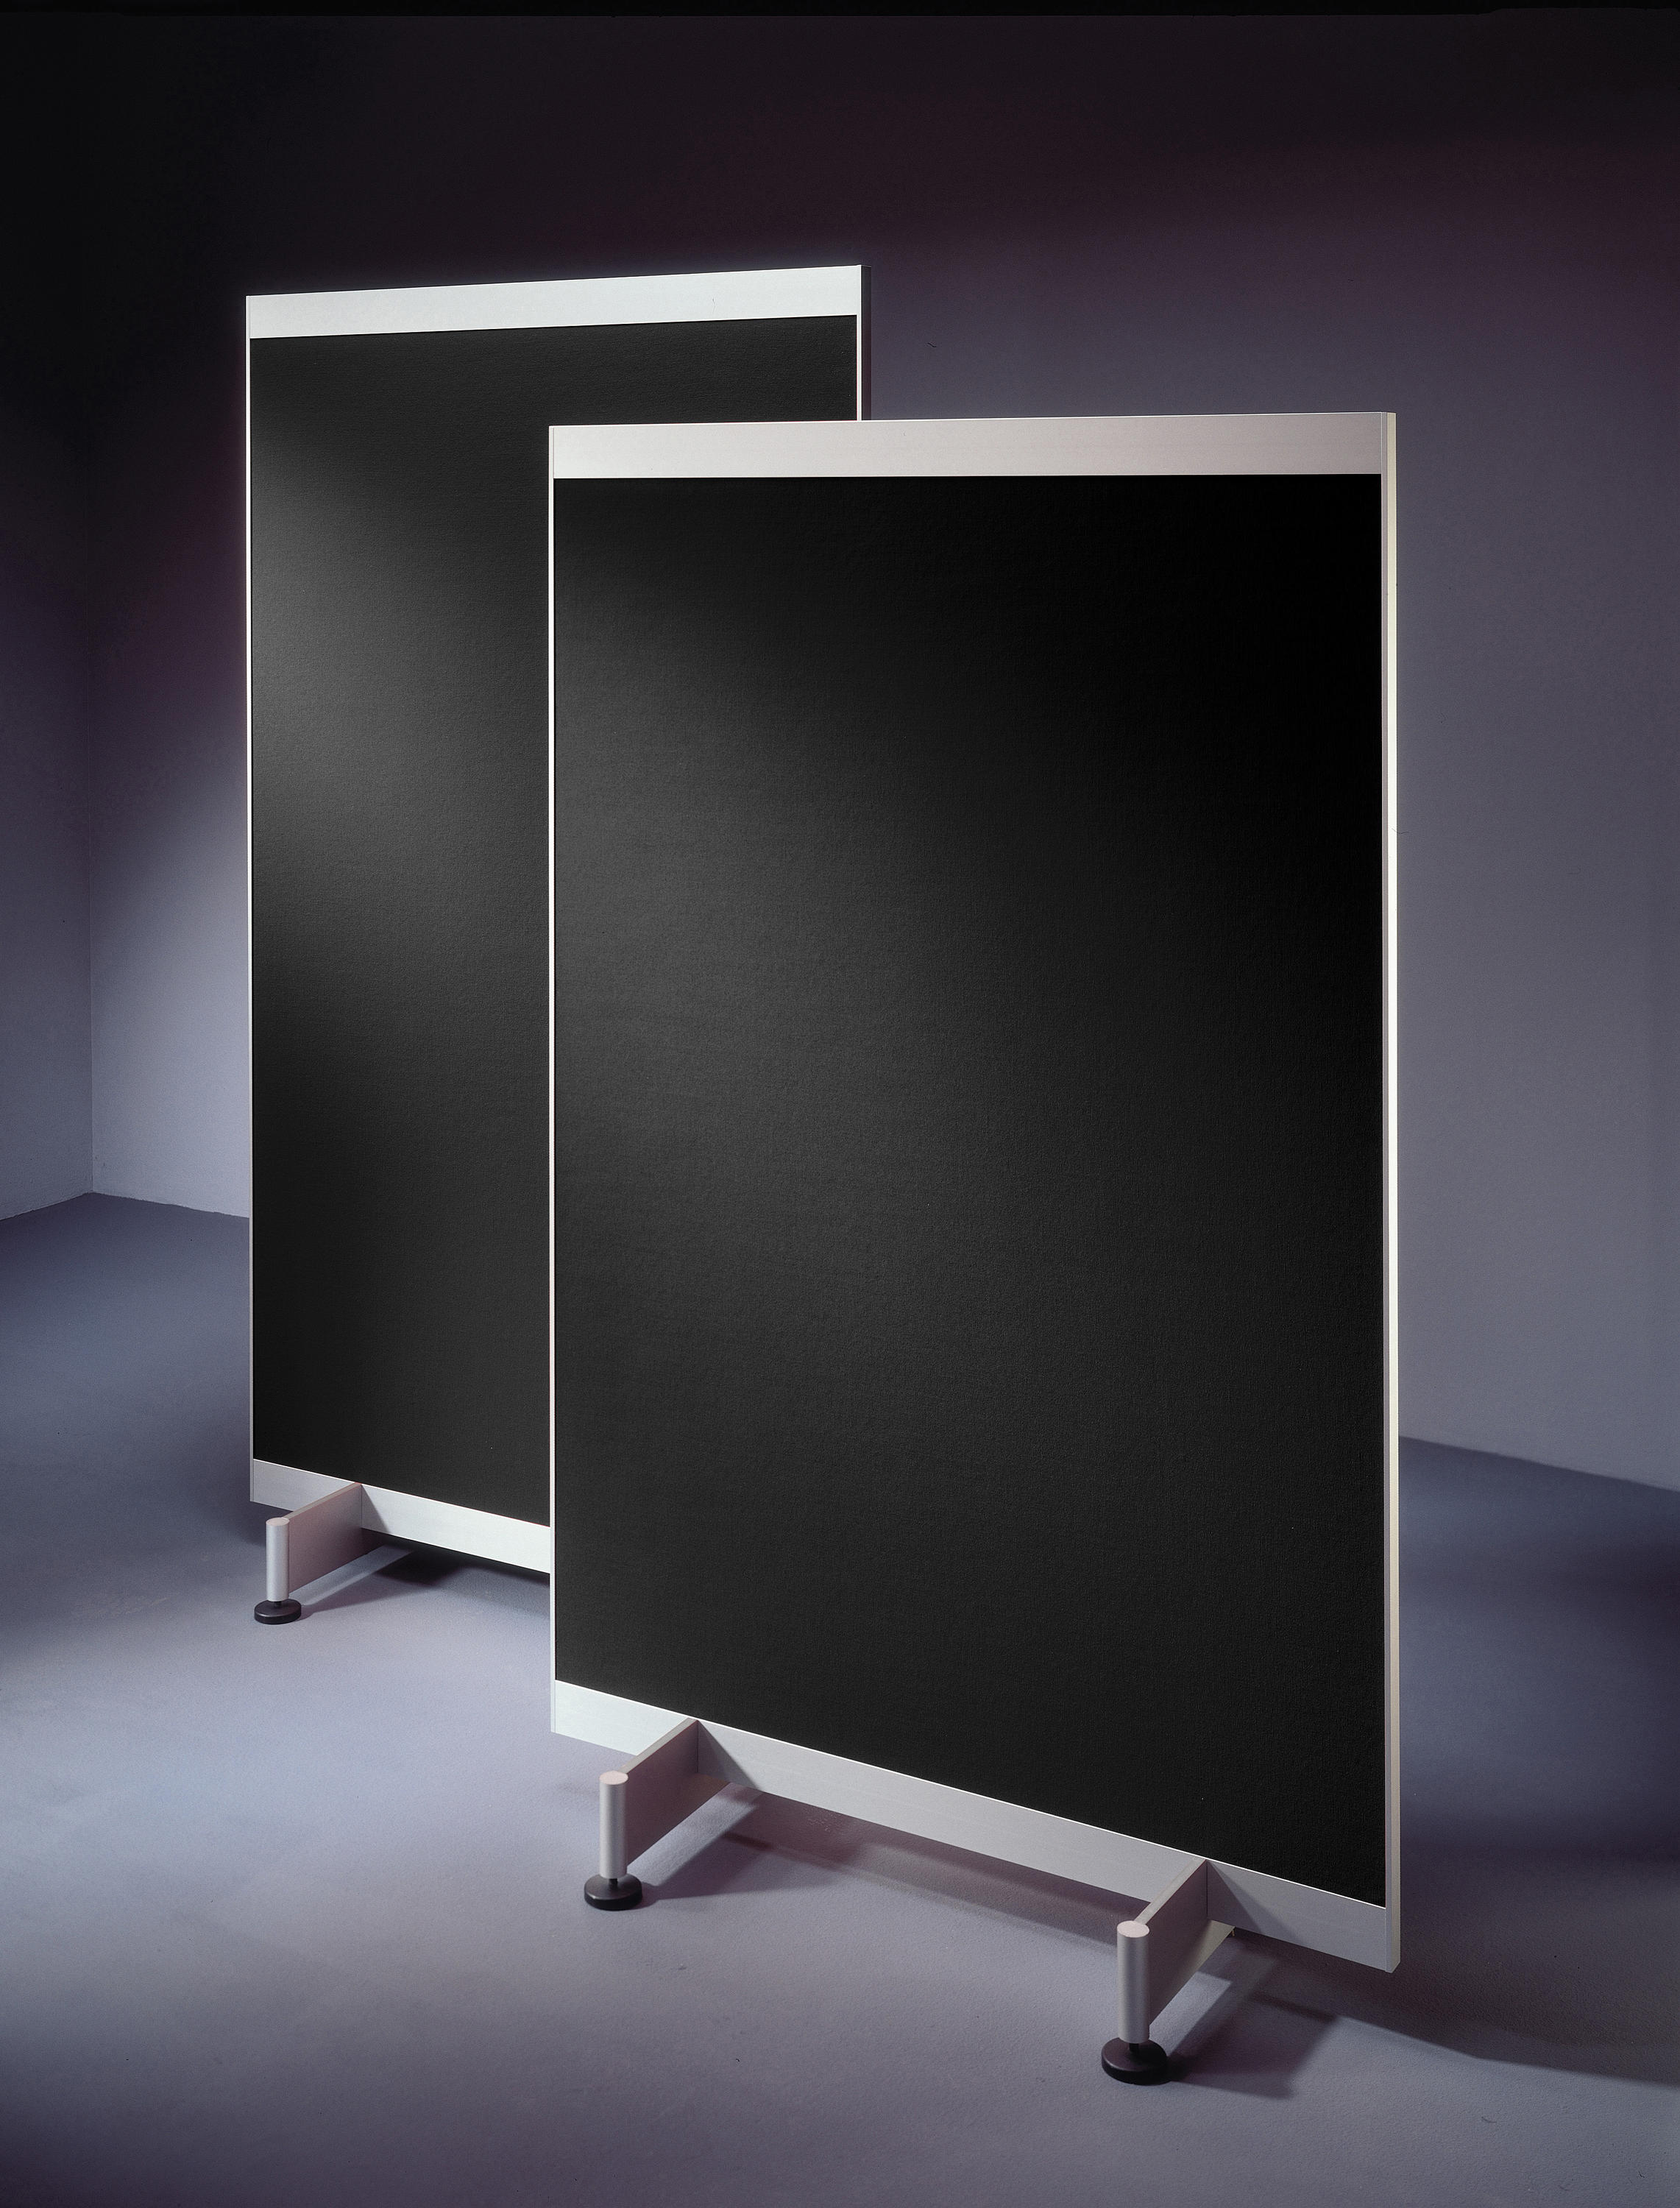 ACOUSTIC ROOM DIVIDER Space dividing systems from Borks Architonic